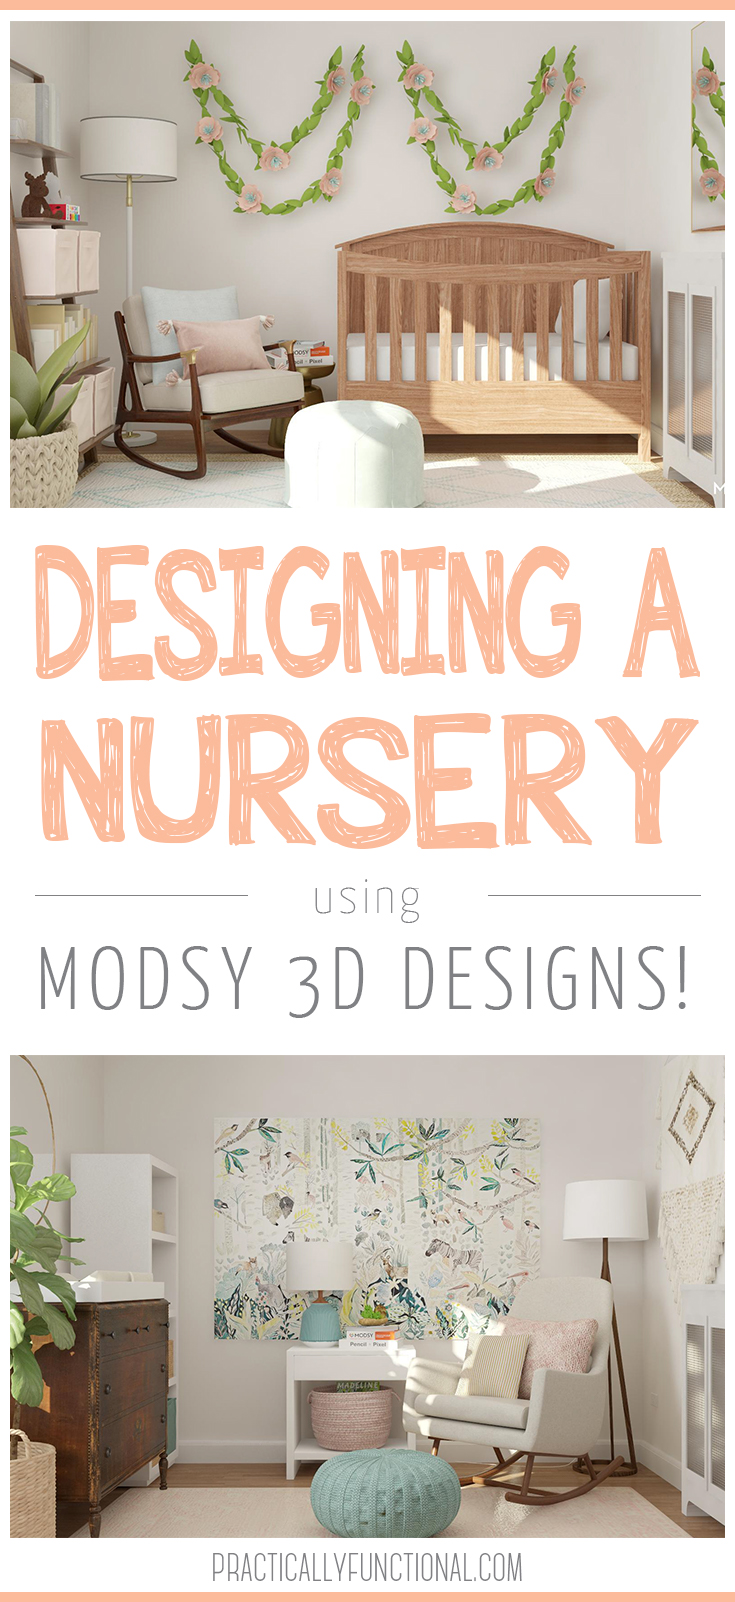 Designing a nursery with modsy my favorite room design tool